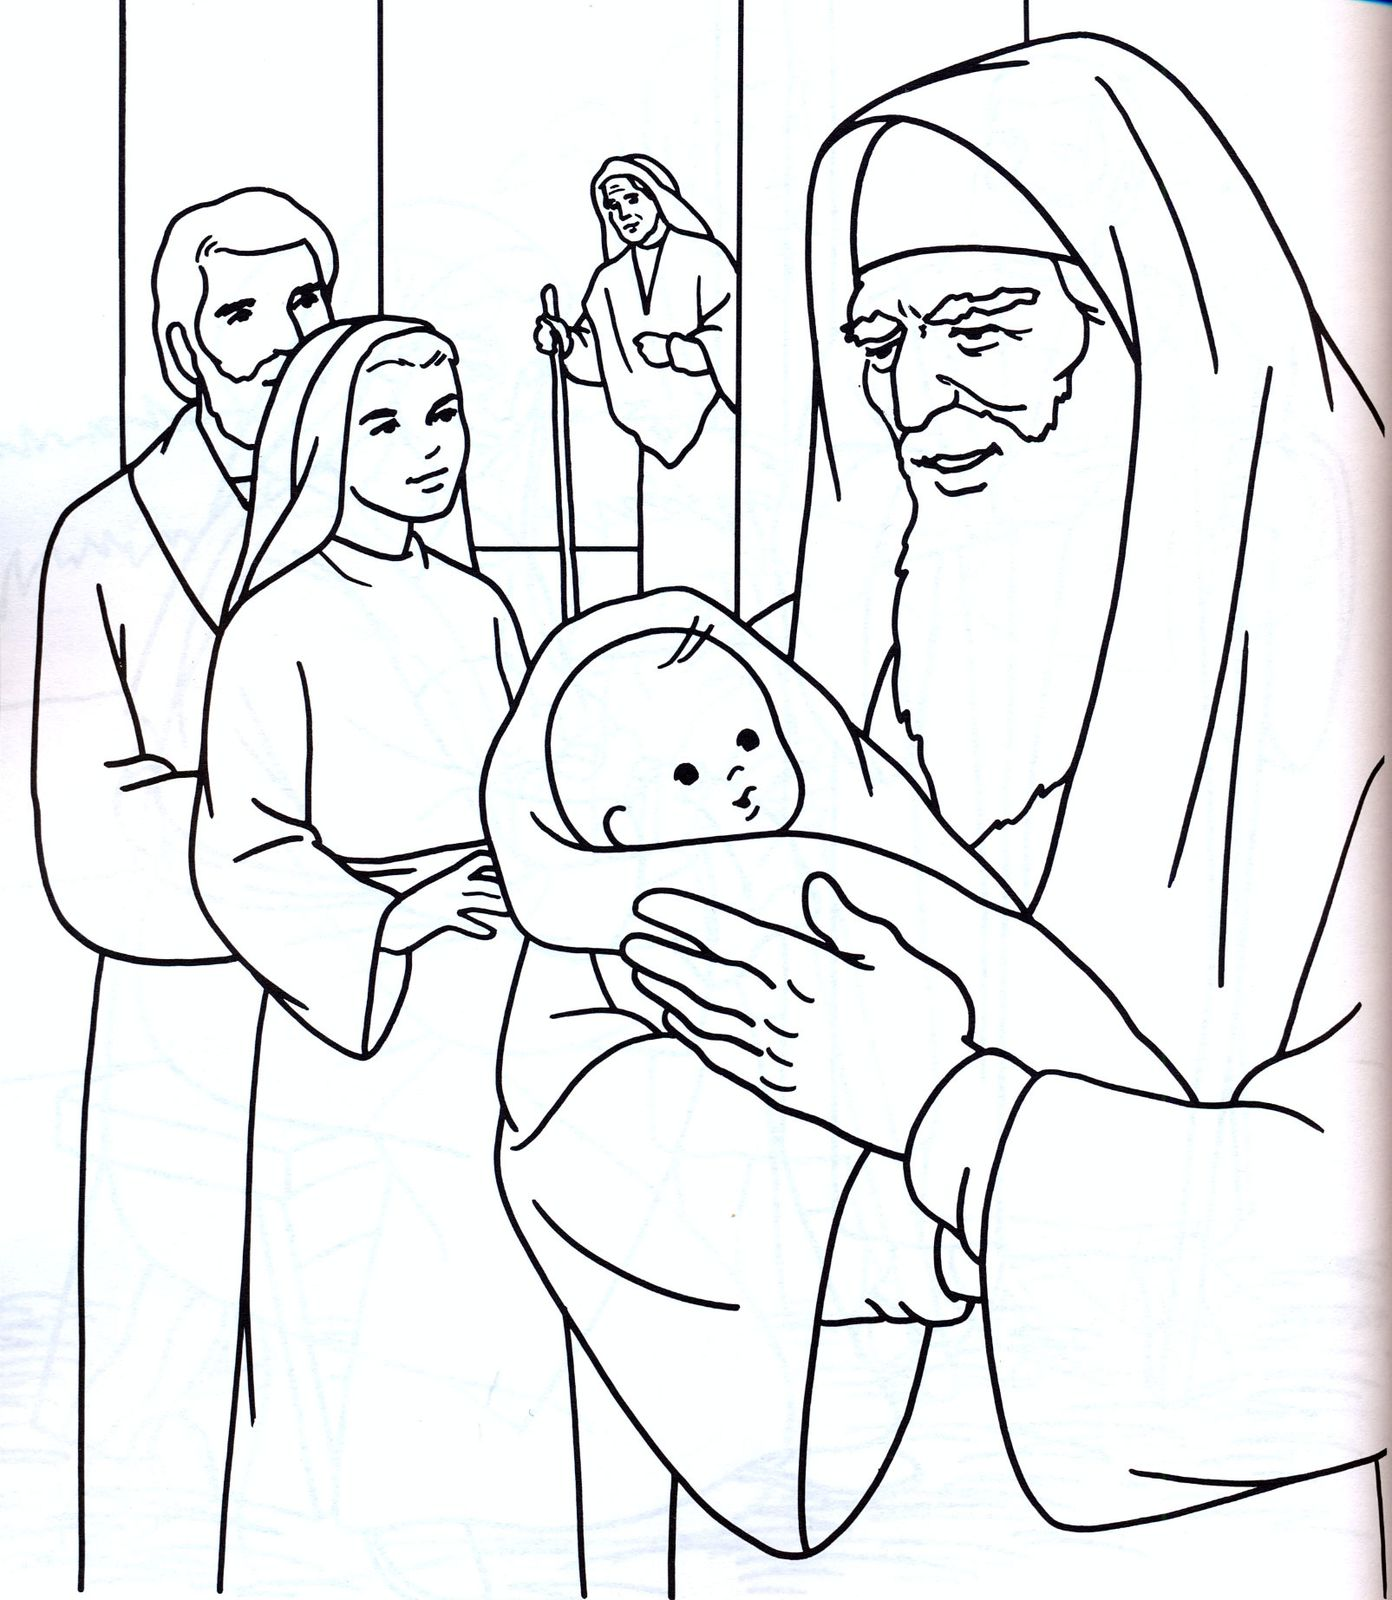 simeon and anna coloring pages - photo#19